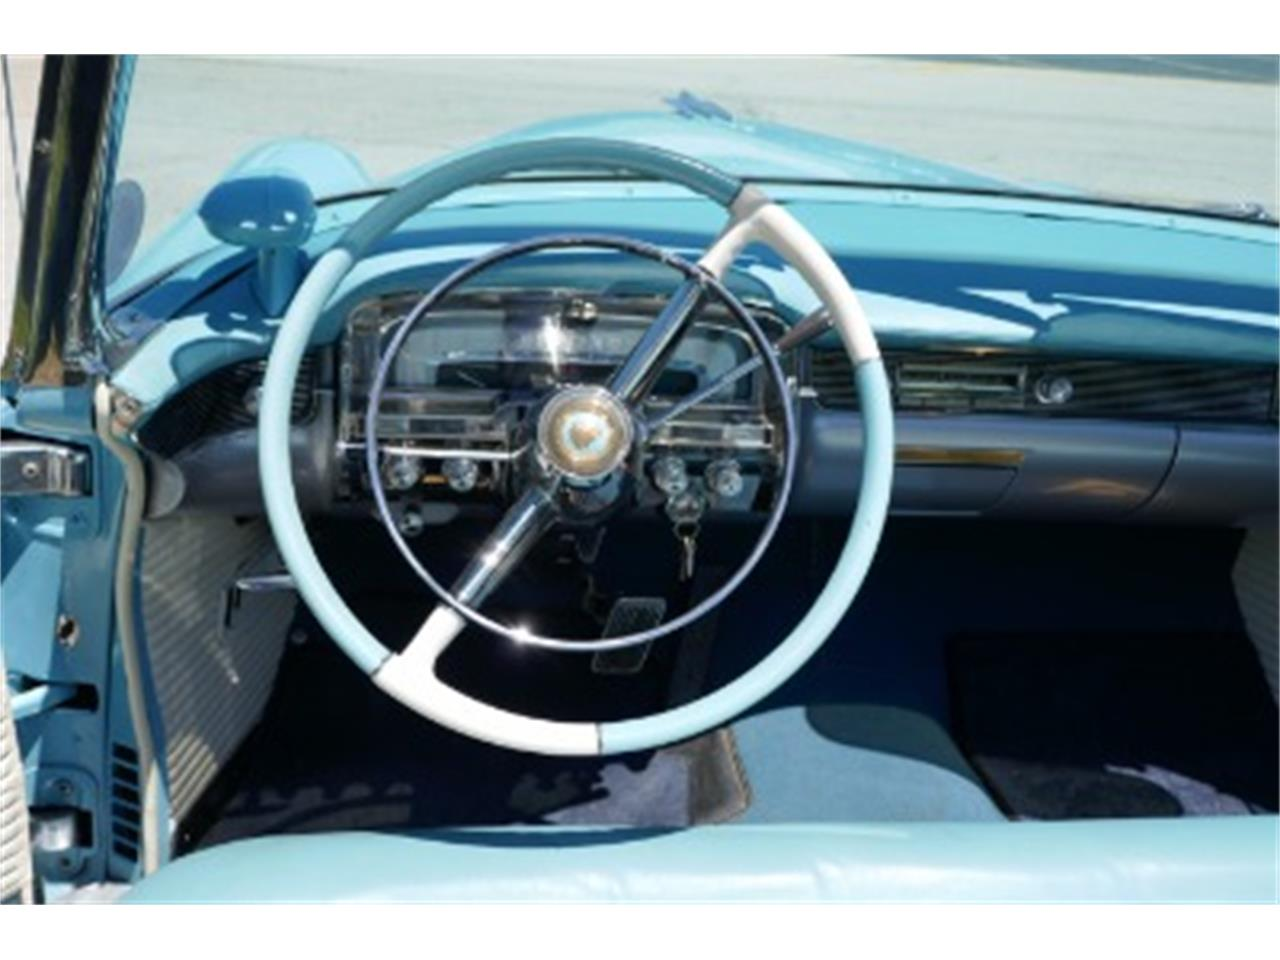 Large Picture of Classic '54 Cadillac Eldorado located in Palatine Illinois - $92,500.00 - LTHV